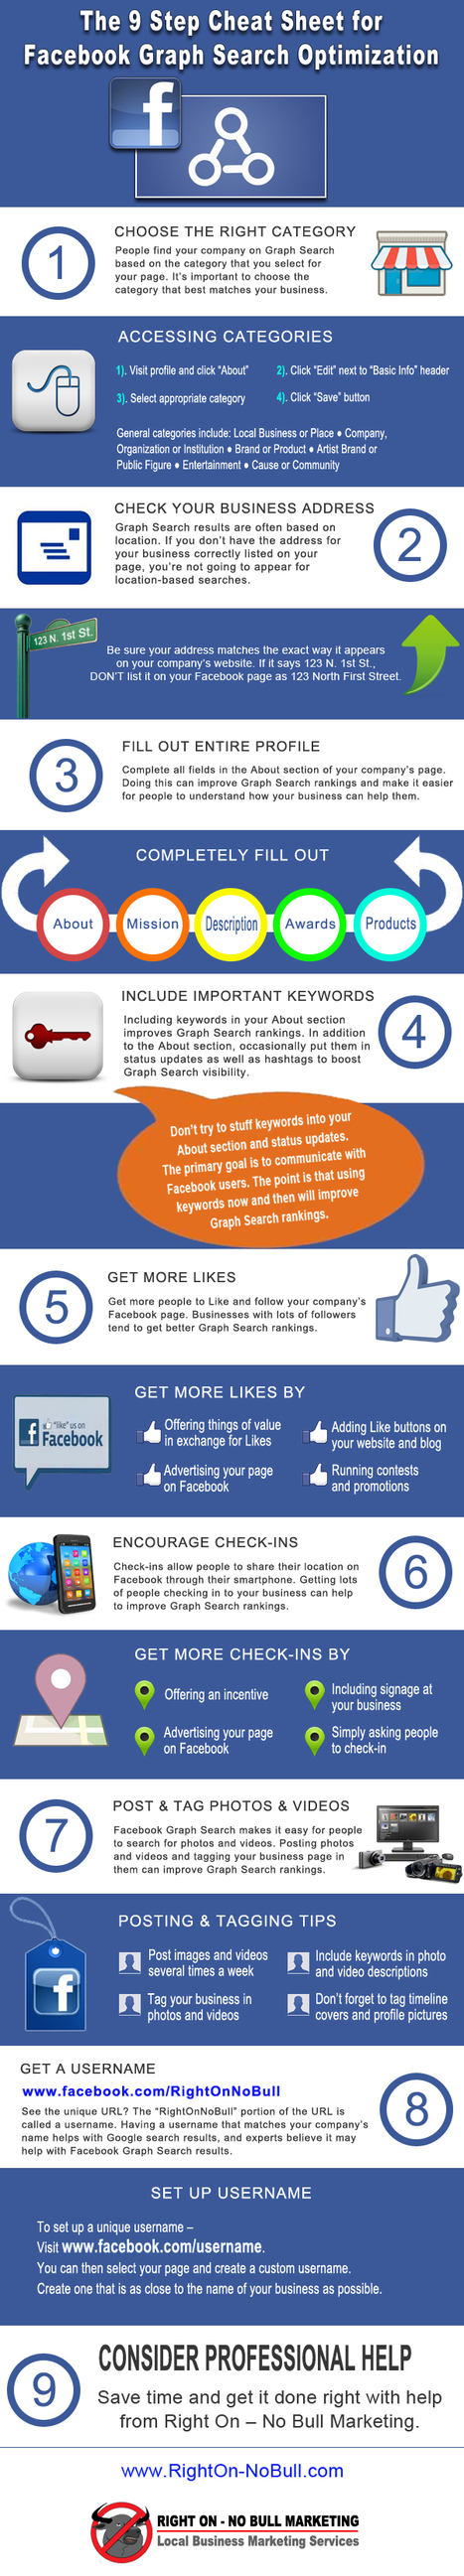 9 Steps for Facebook Graph Search Optimization [INFOGRAPHIC] | SM | Scoop.it